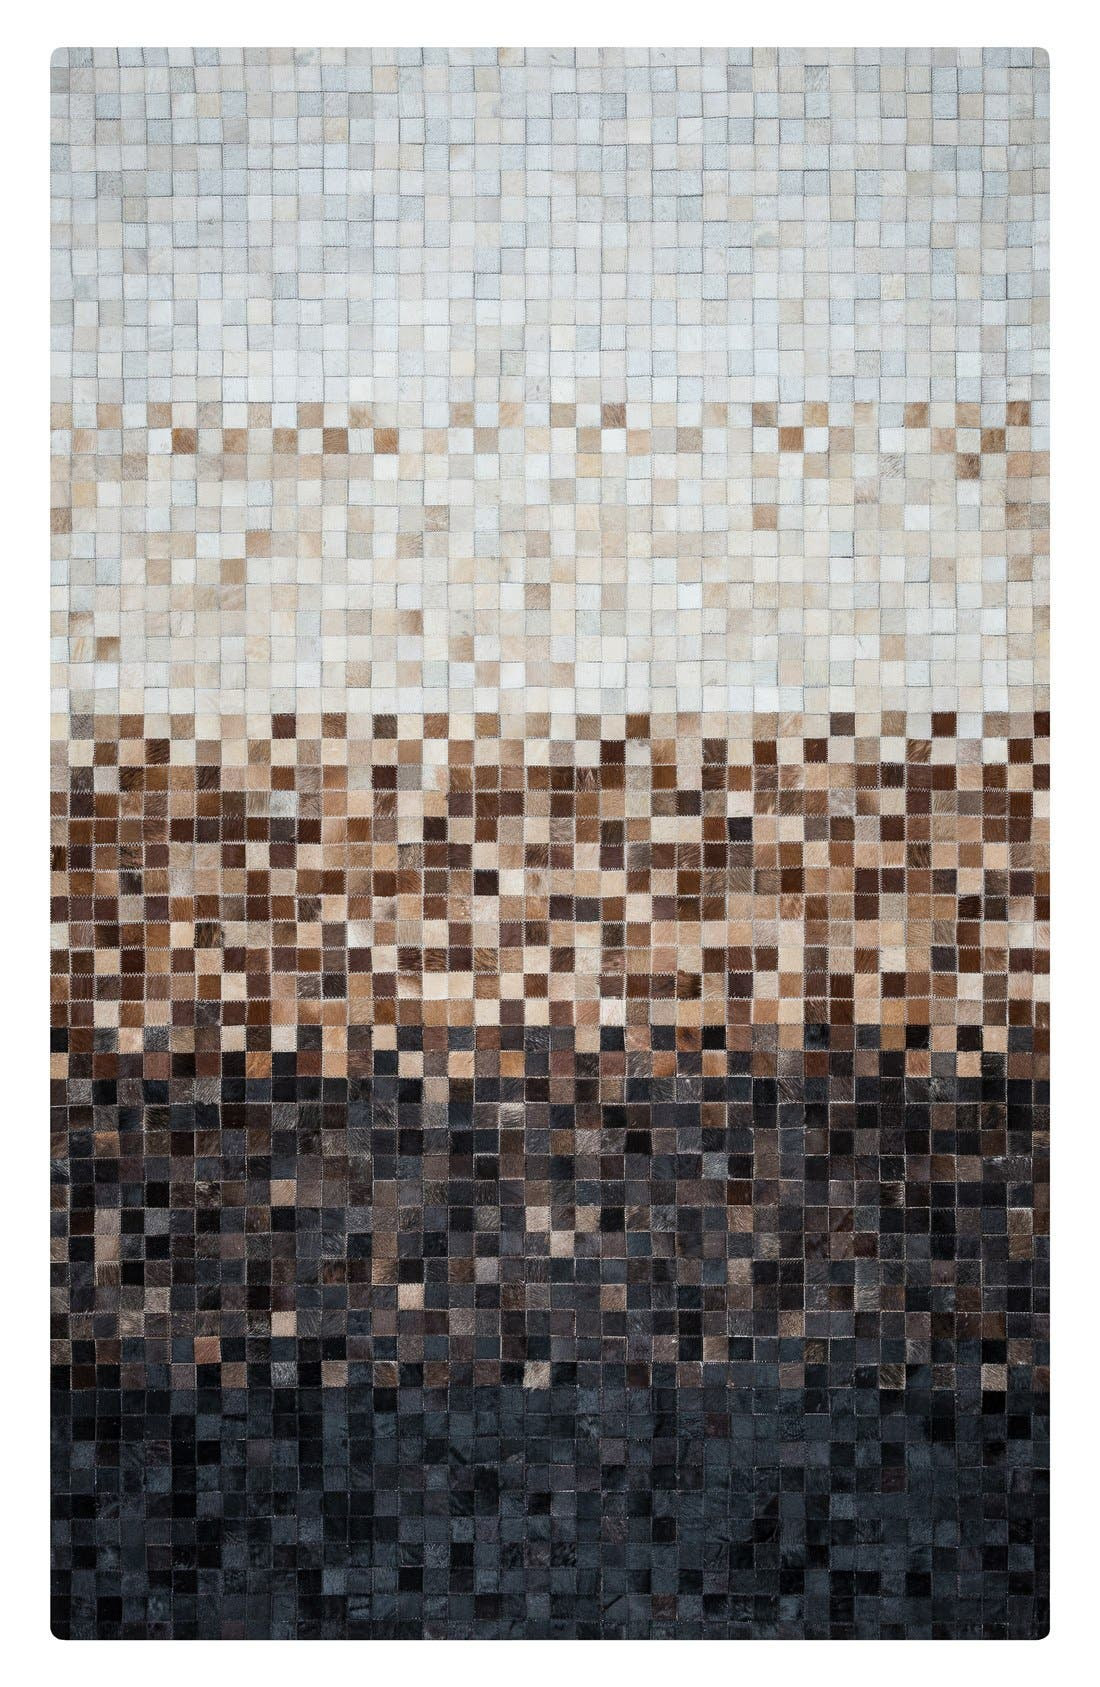 Alternate Image 1 Selected - Rizzy Home 'Cumberland Pixel' Hand Sewn Leather Area Rug